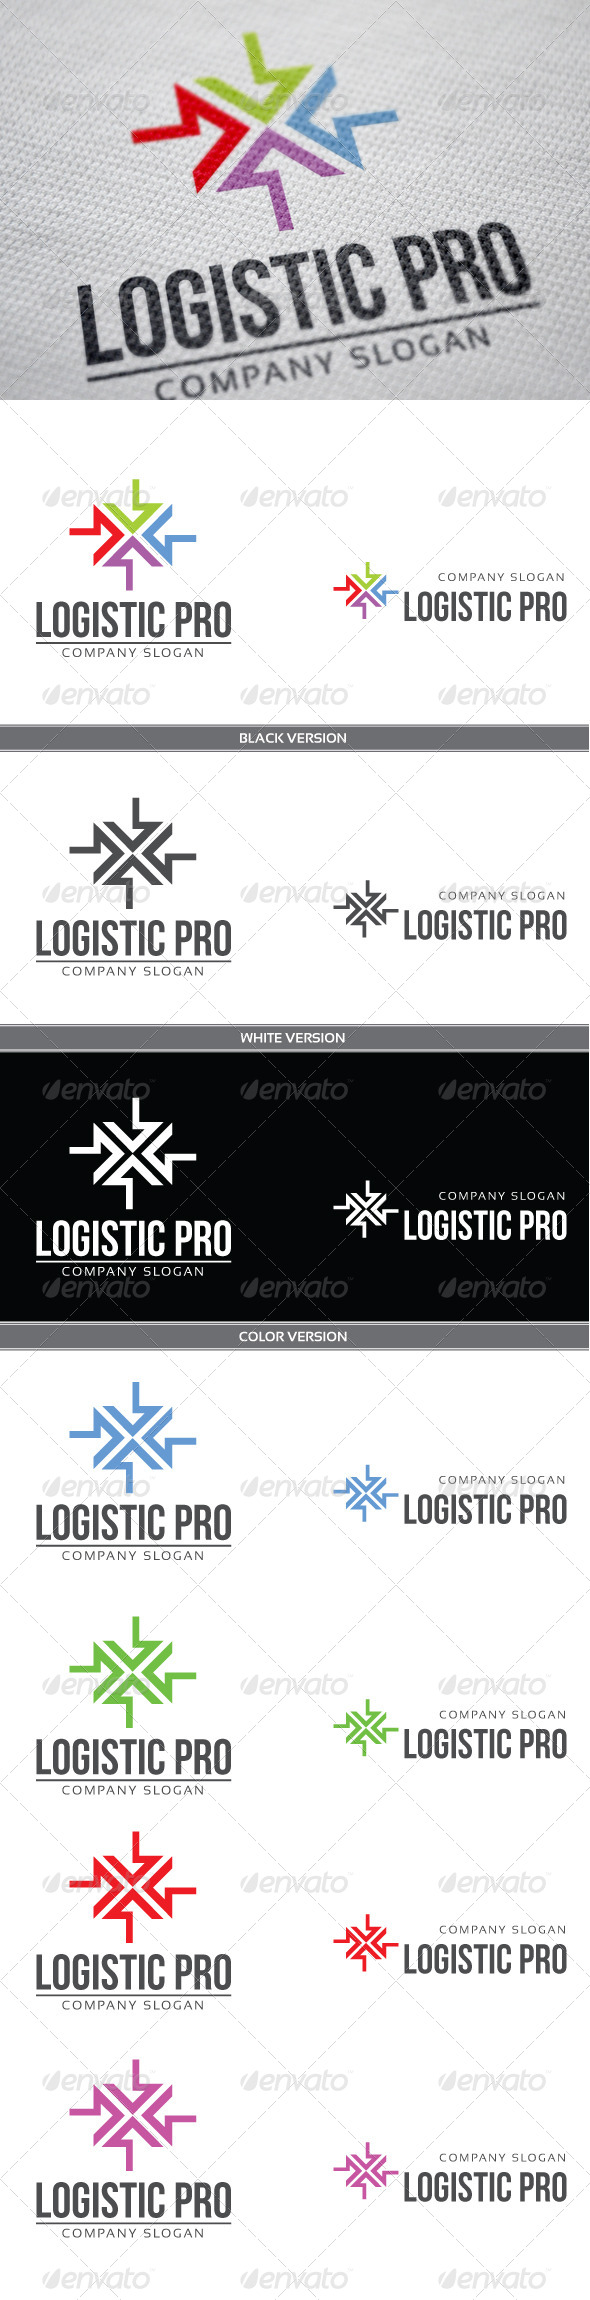 Logistic Pro - Vector Abstract